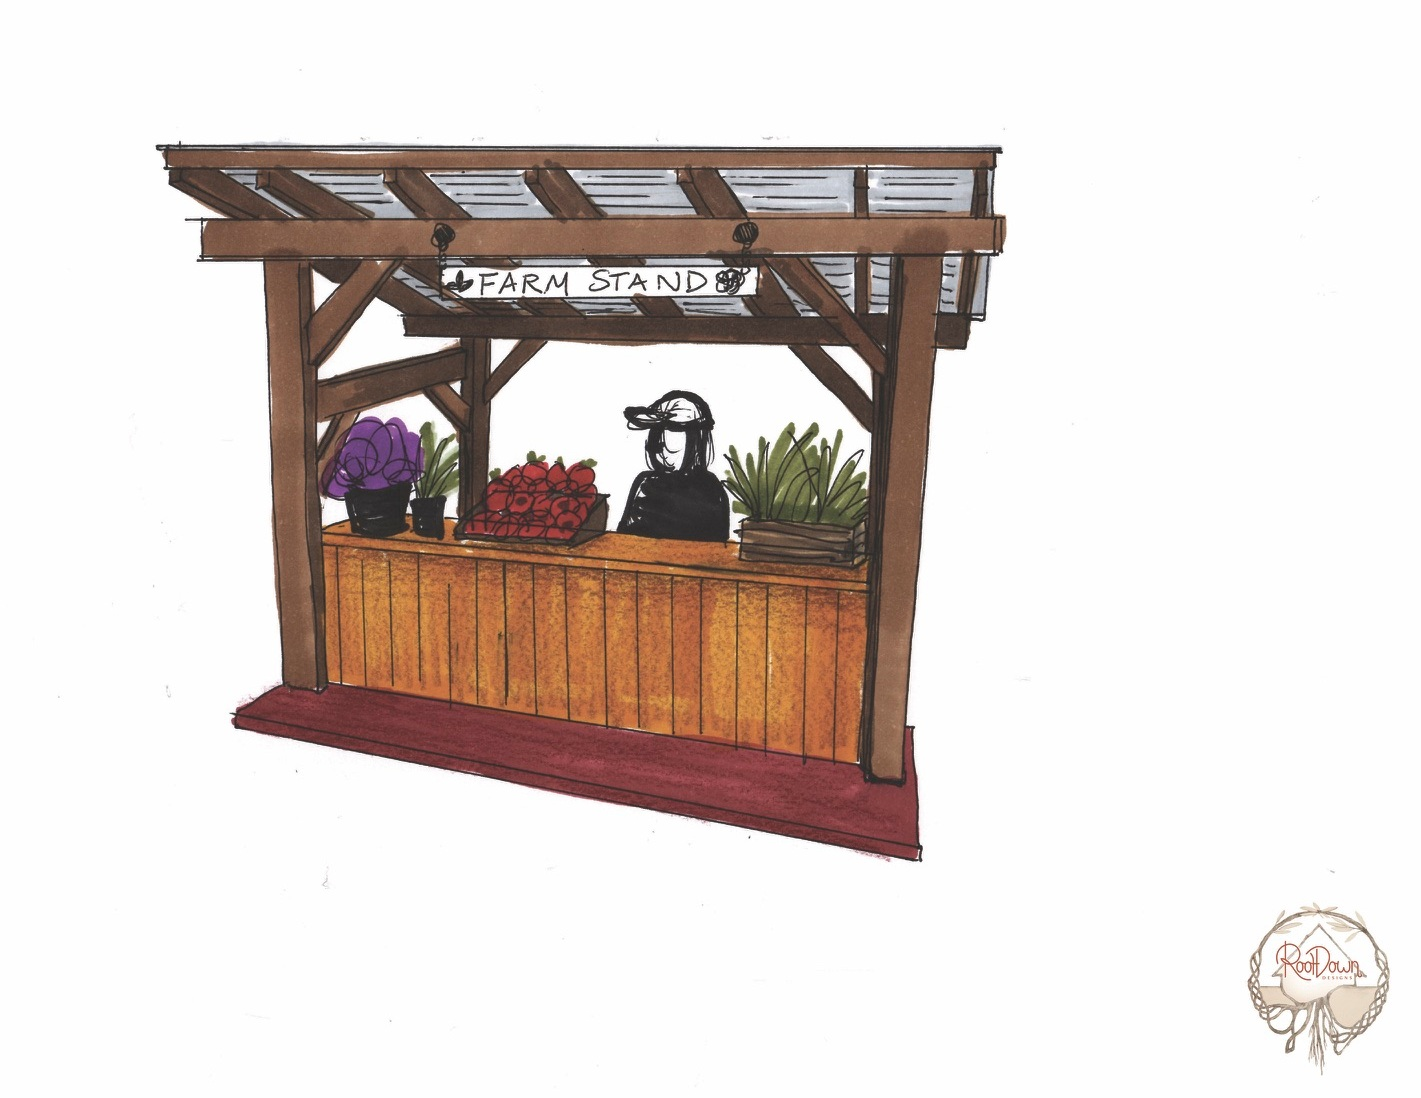 Market Stand to support local agriculture